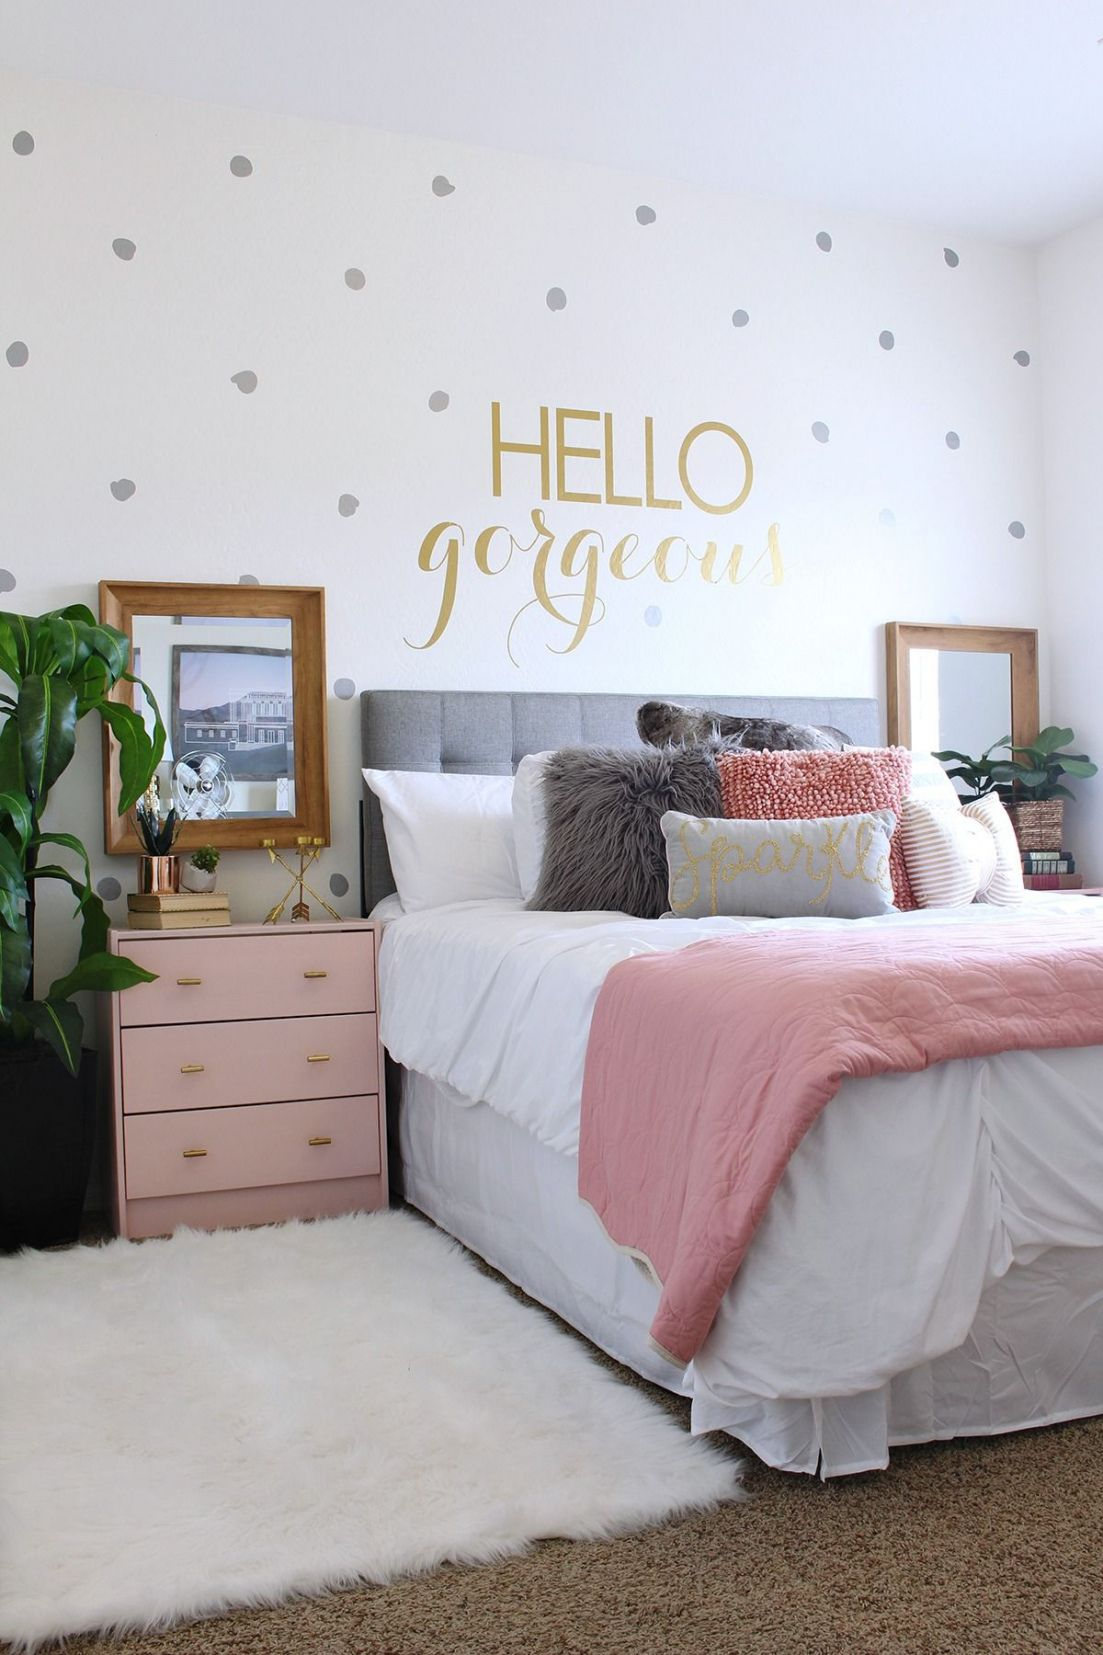 99+ Teen Room Ideas For Girls   Wall Art Ideas For Bedroom Check More At ...